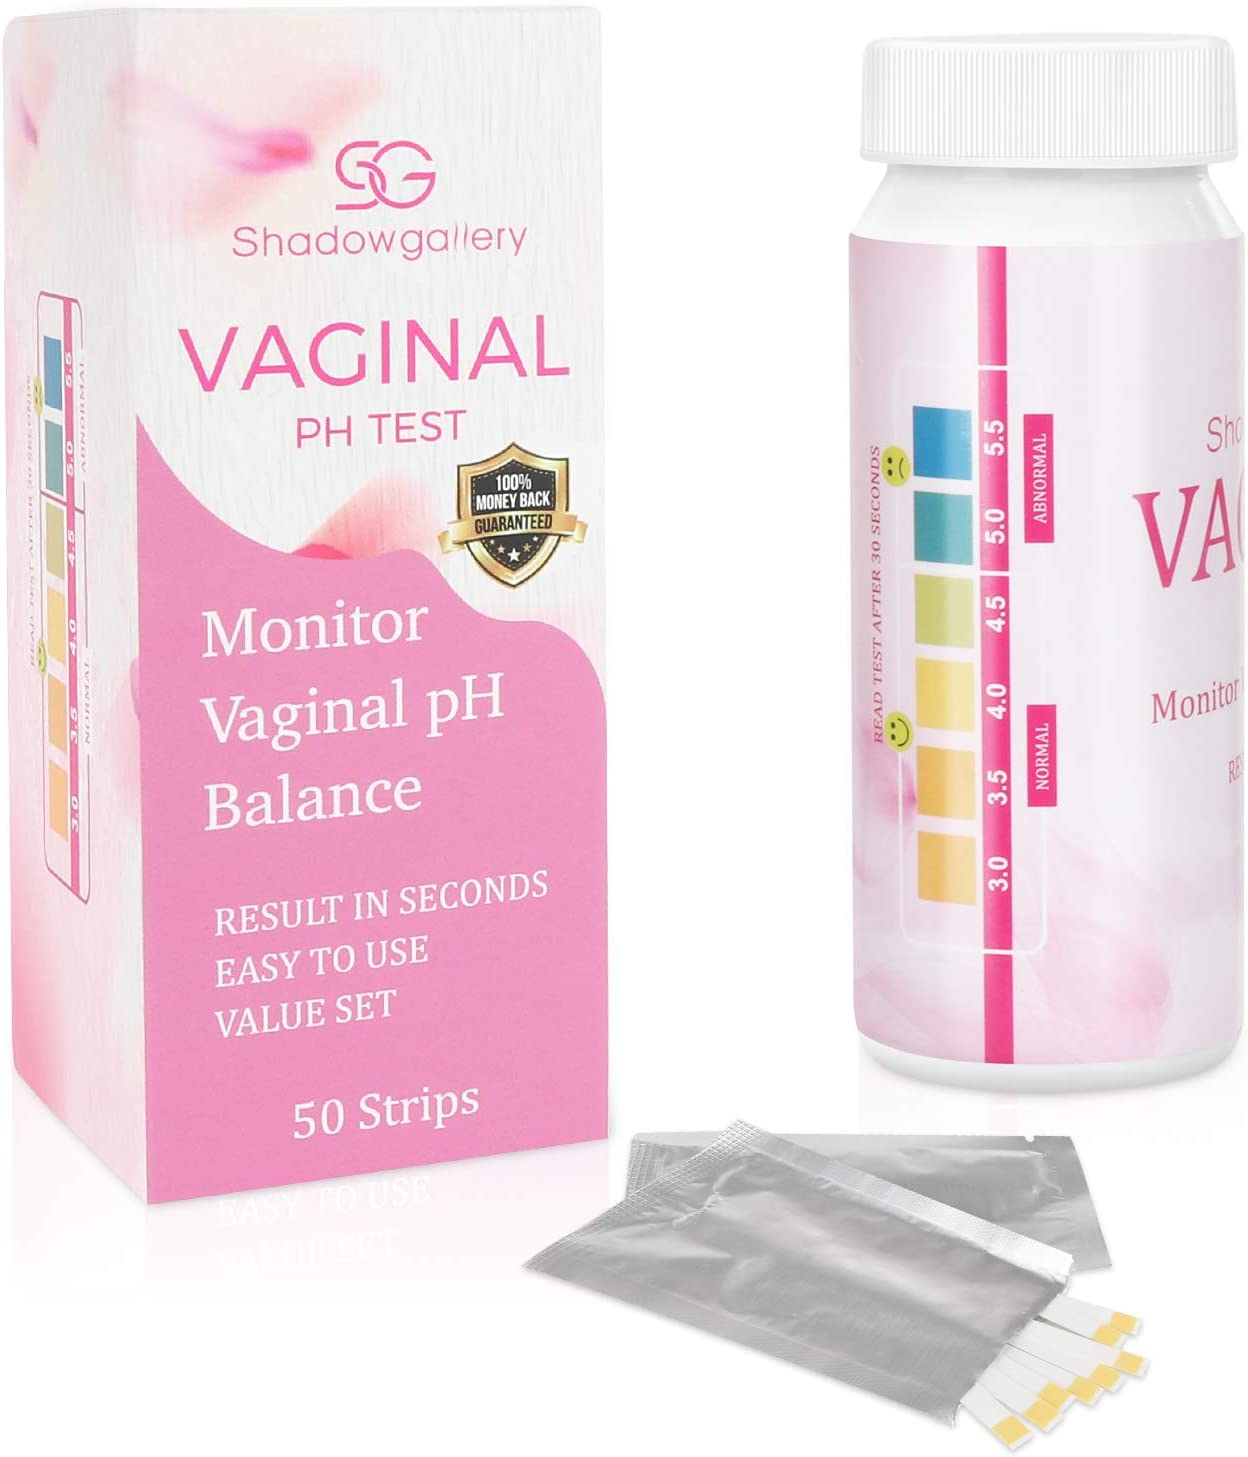 50 Strips- Vaginal Health PH Test Strips, Monitor Feminine Vaginal PH Balance, Test Before Yeast Infection Treatment or BV Treatment, Easy Use and Accurate Match